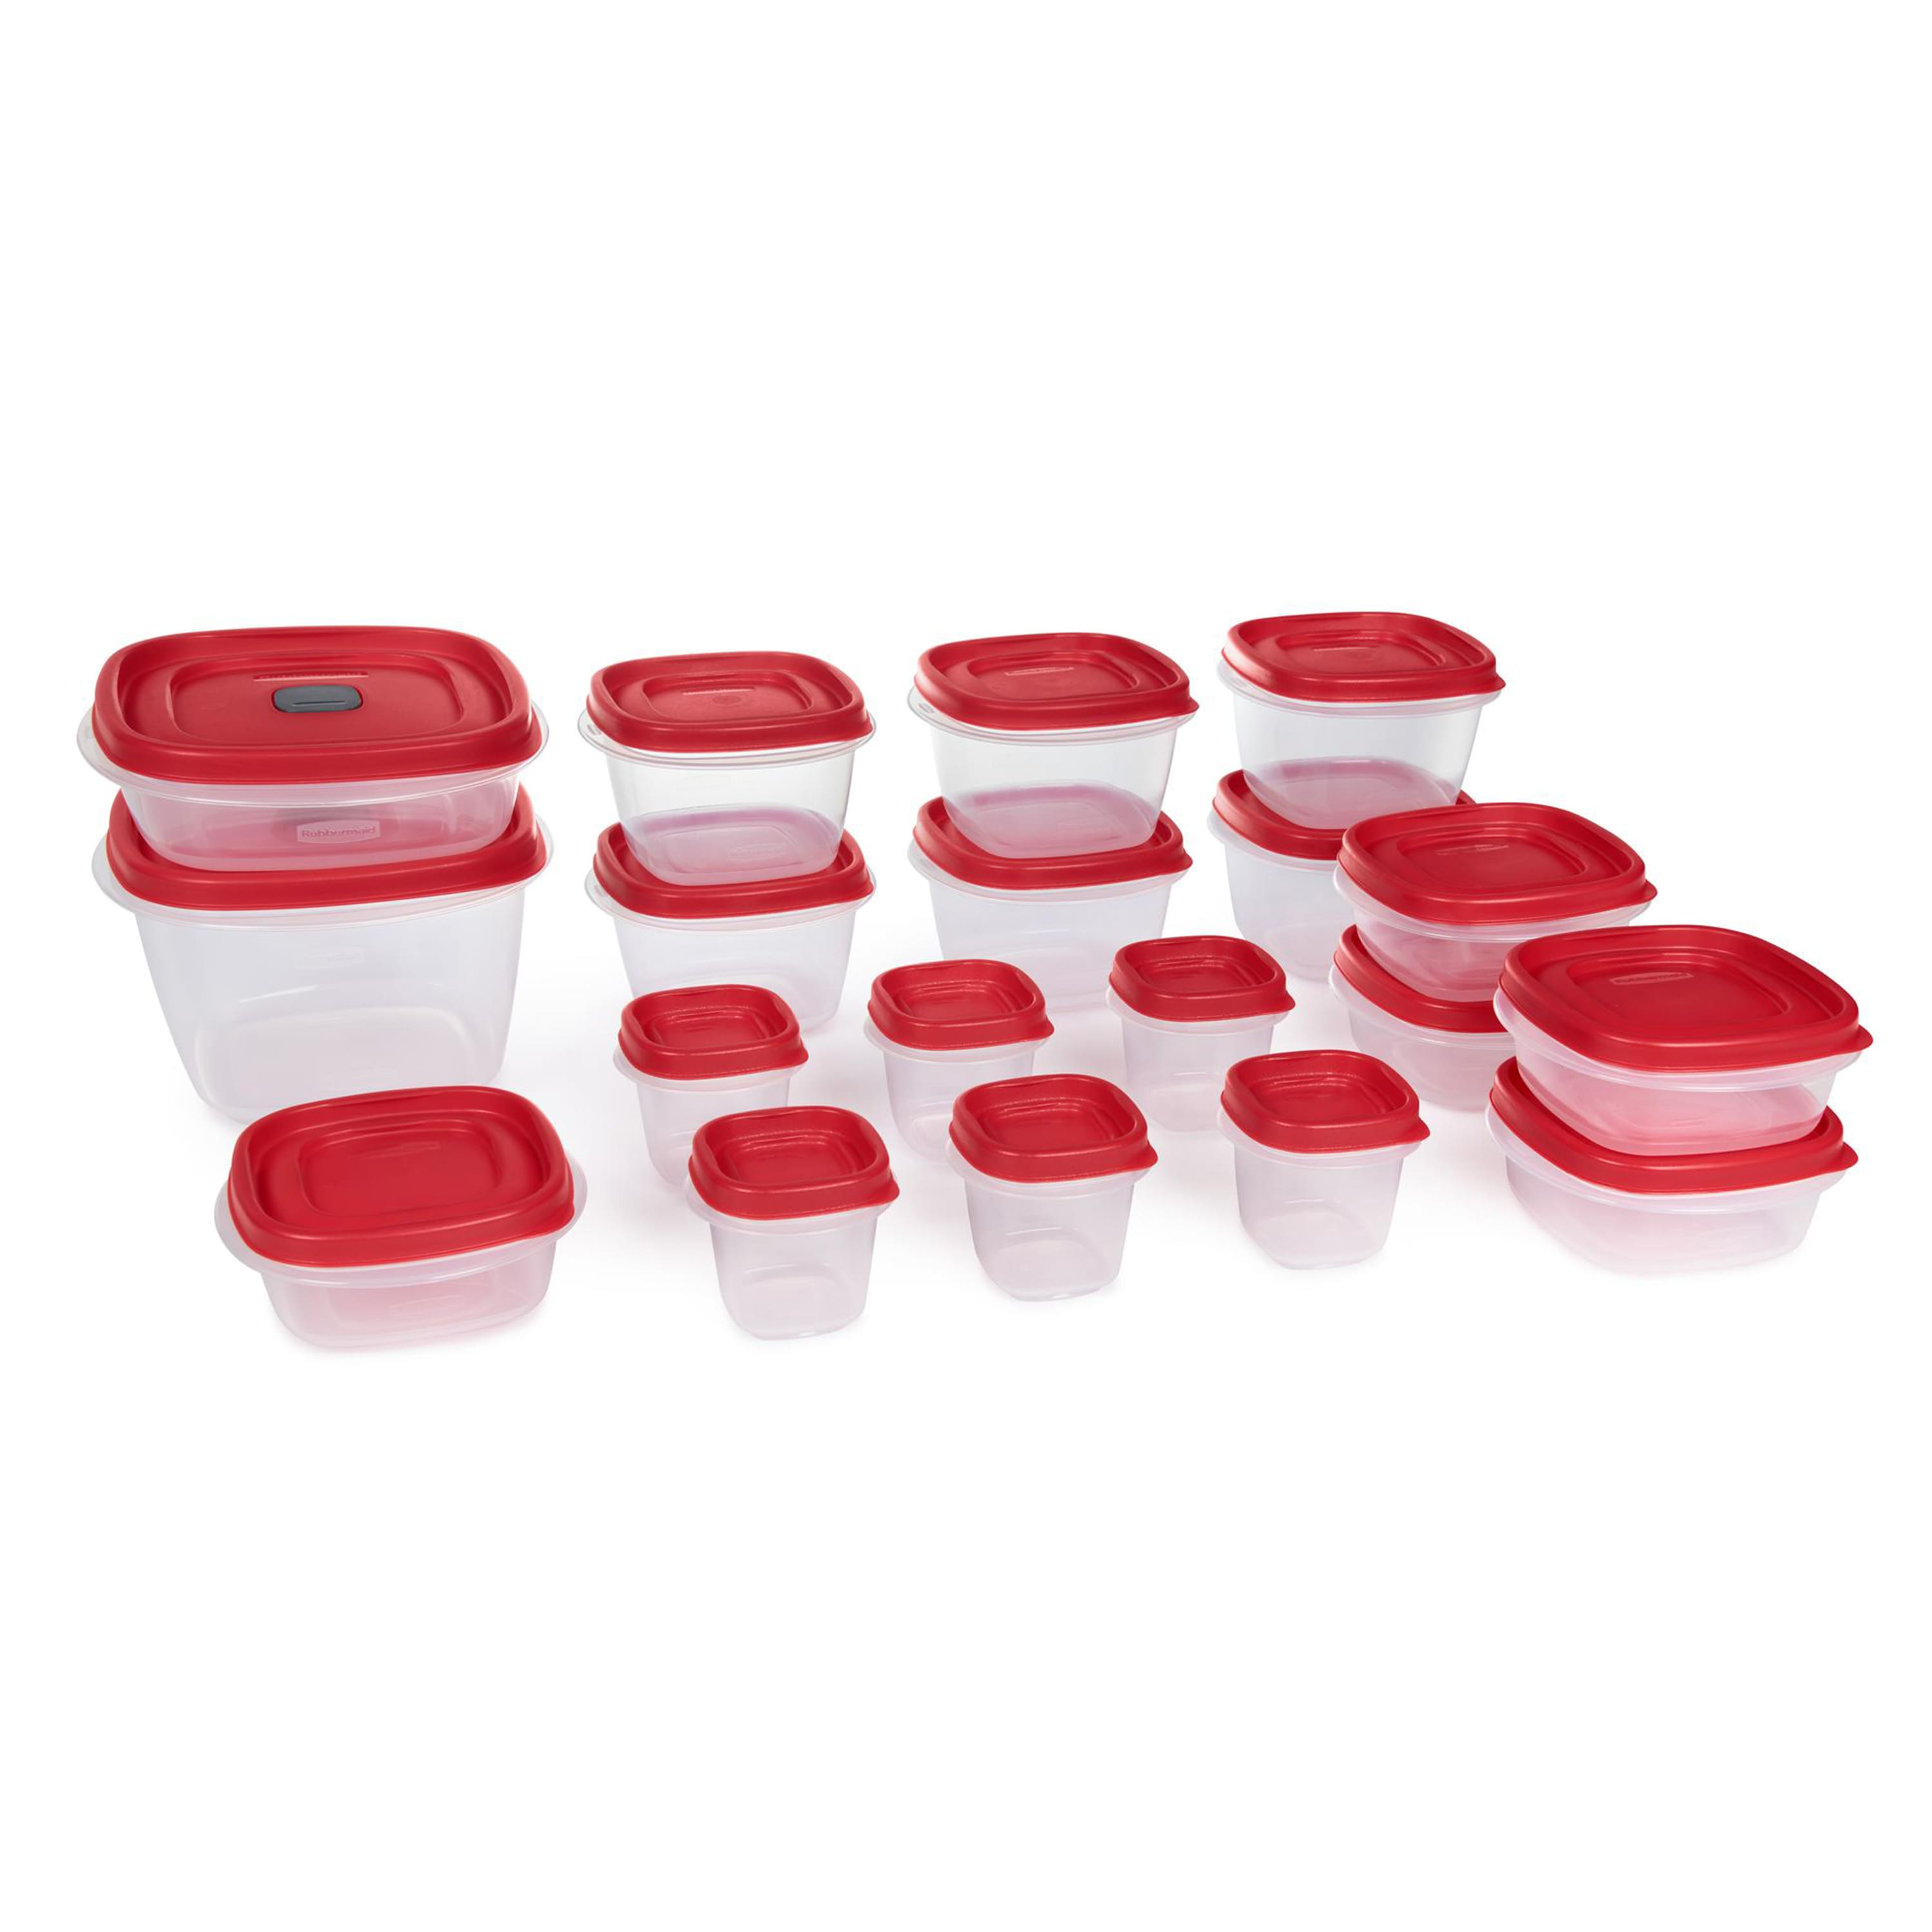 Rubbermaid Food Storage Containers, Set of 19 (38 Pieces Total) $1.50 @Walmart YMMV